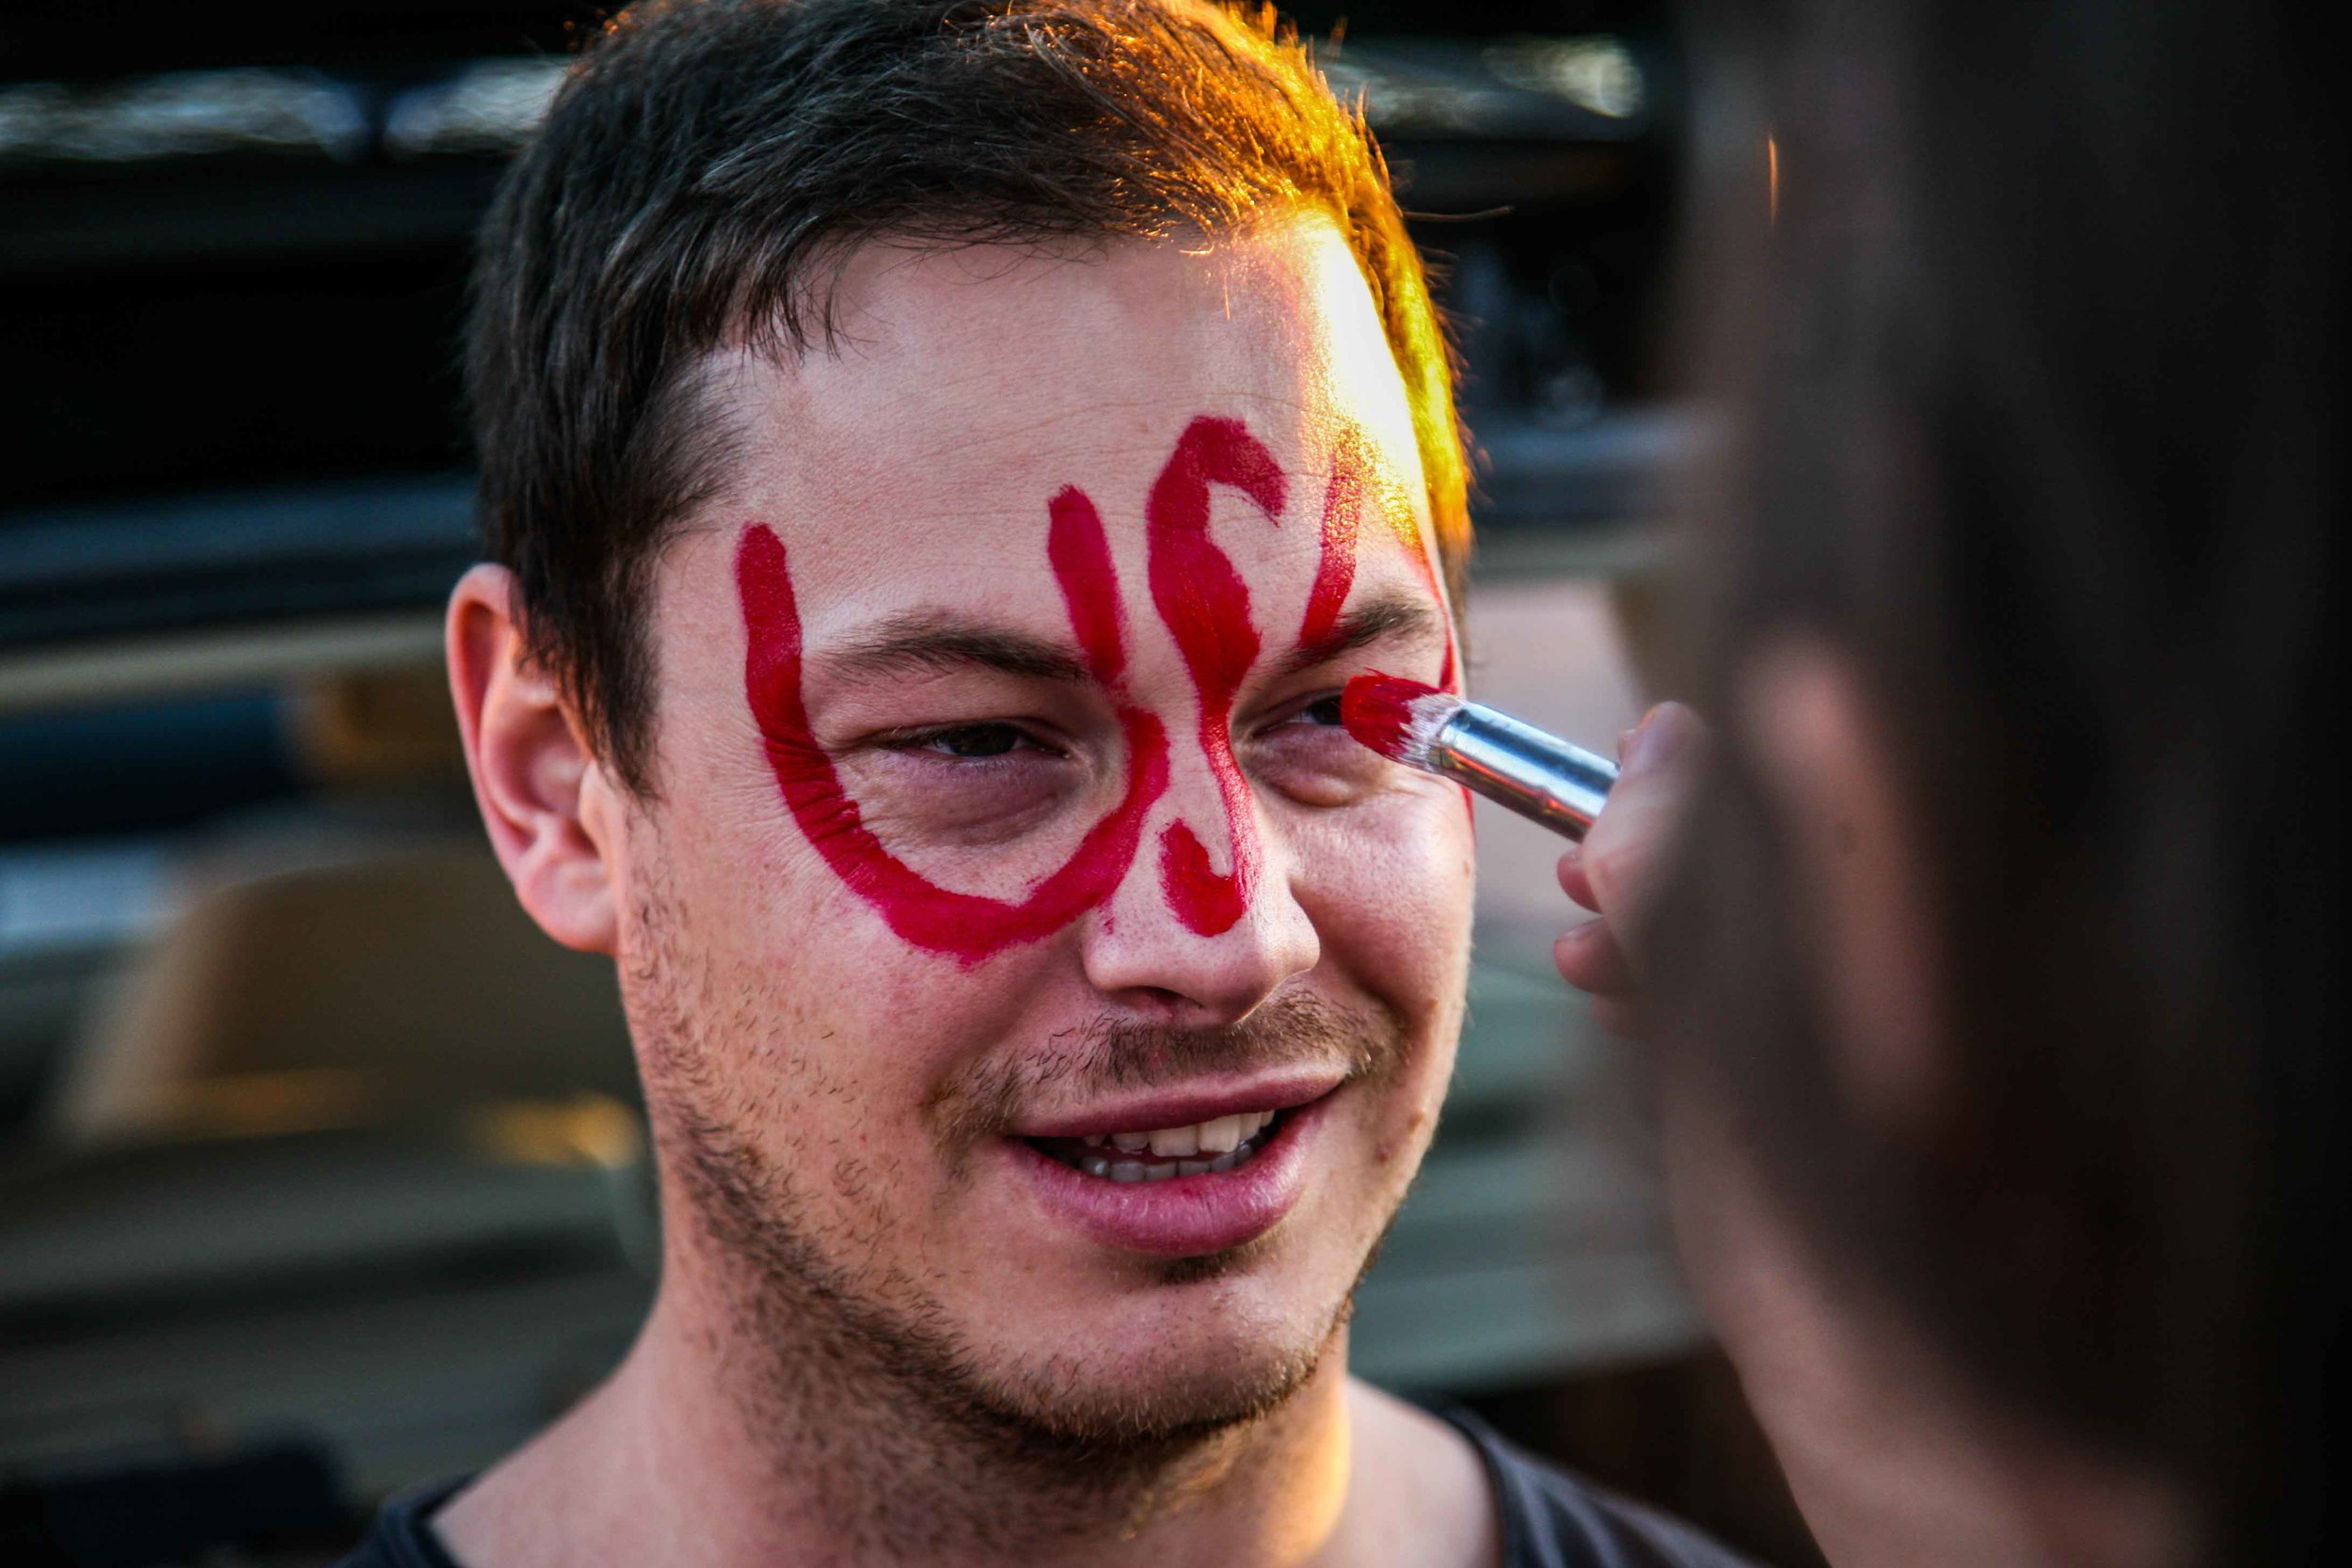 This is Jeff. He's British. So we branded him. On his face.